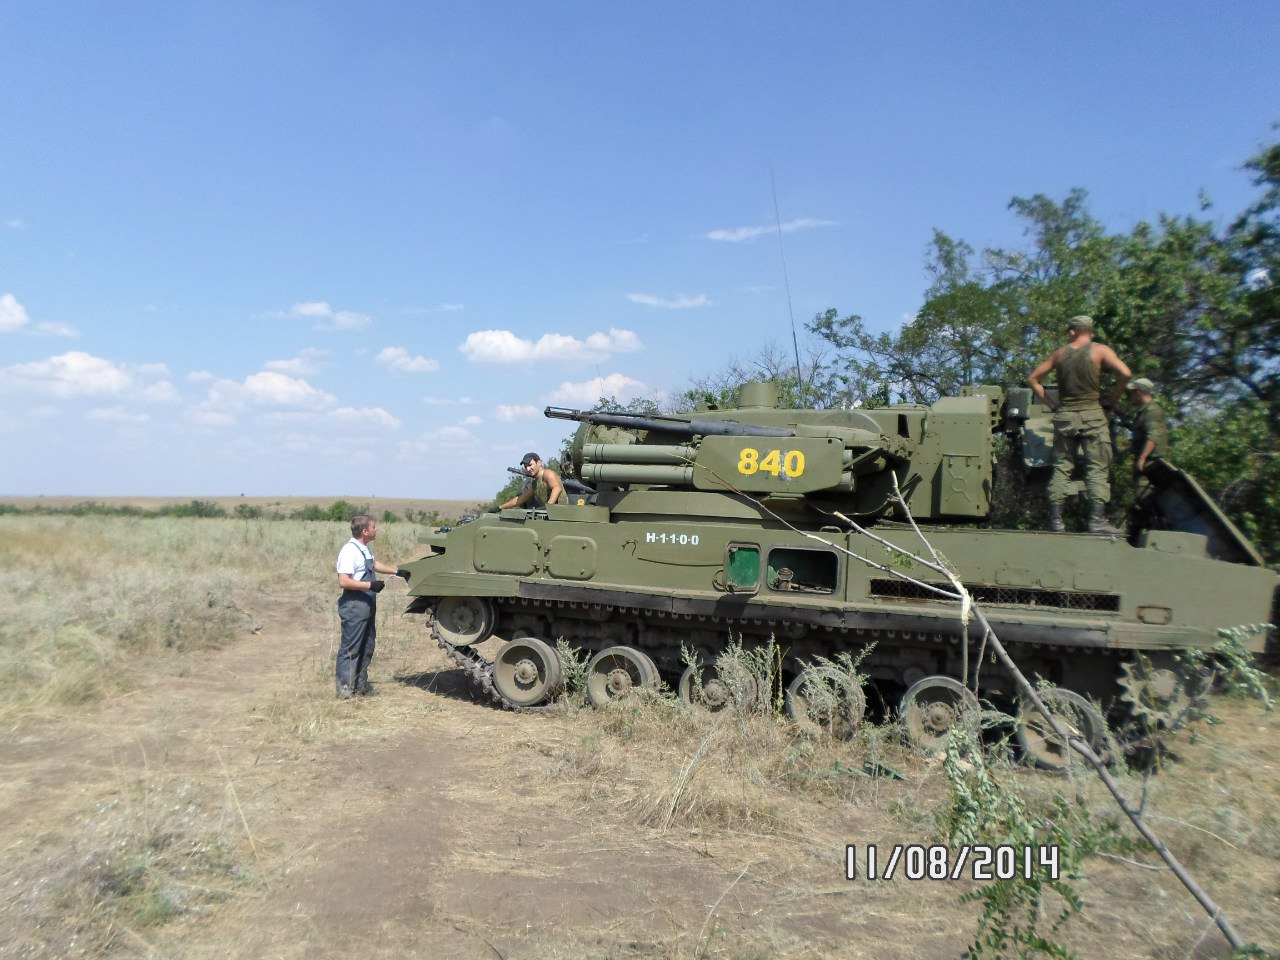 2S6 Tungska self-propelled anti-aircraft system, numbered 840. Archive / Original